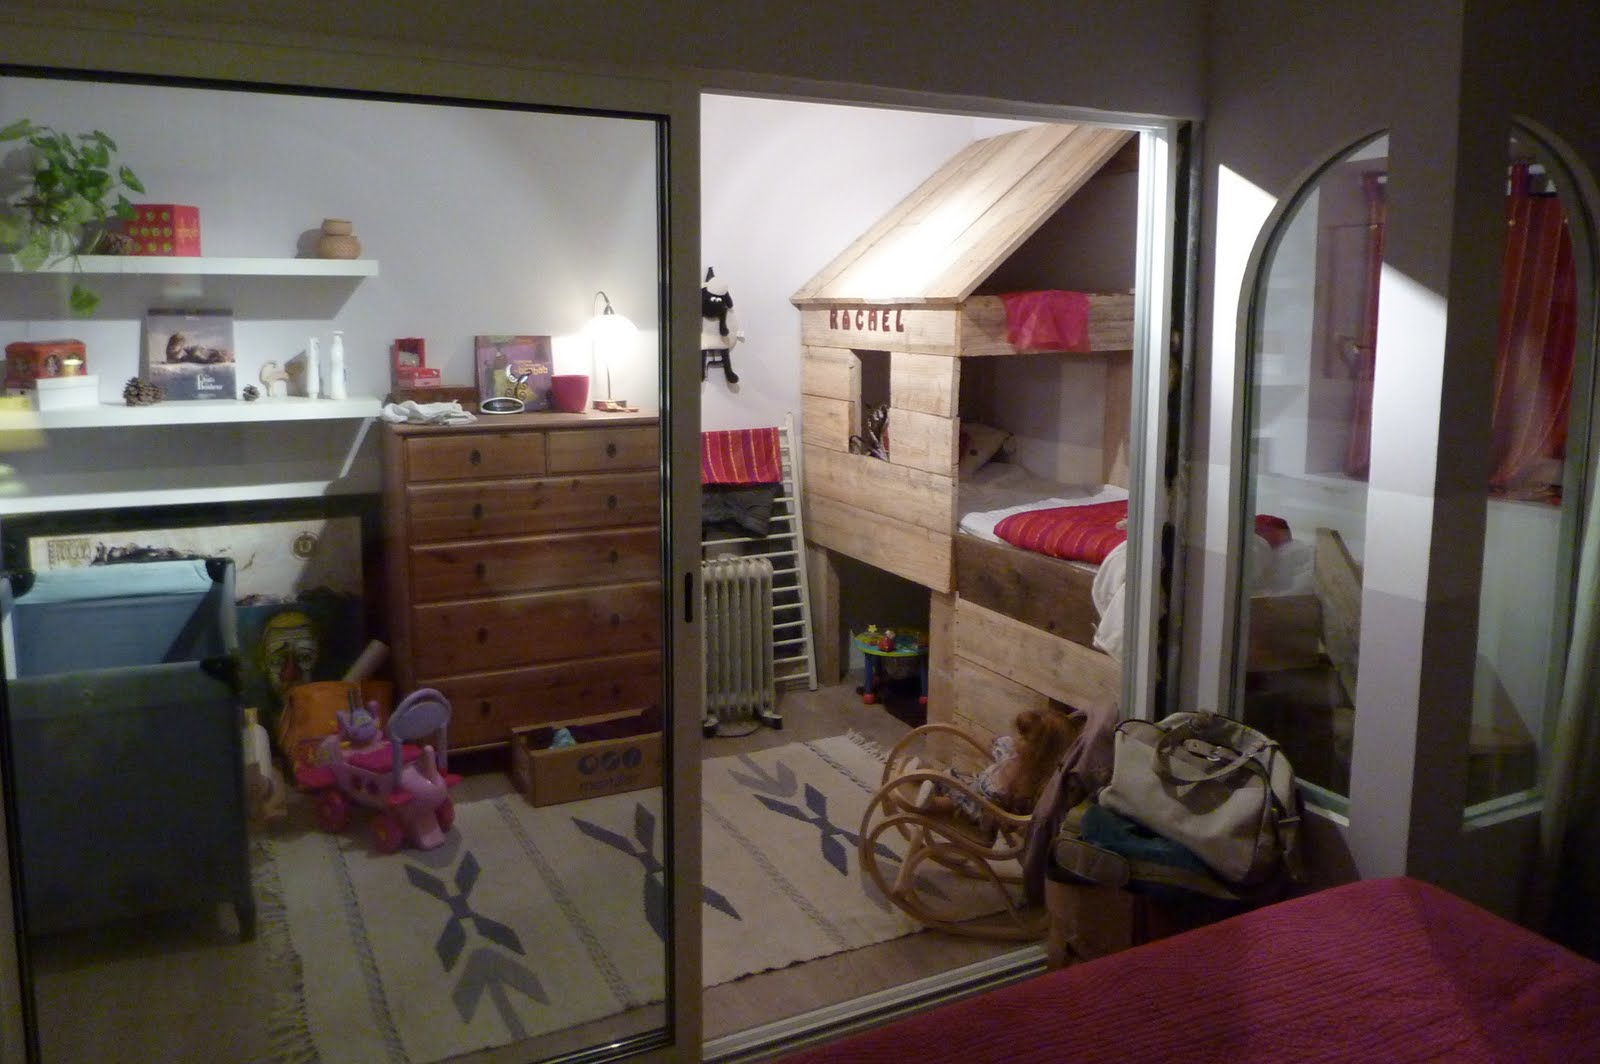 Verri re int rieure am nagement d 39 une chambre d 39 enfant for Amenagement chambre d enfant